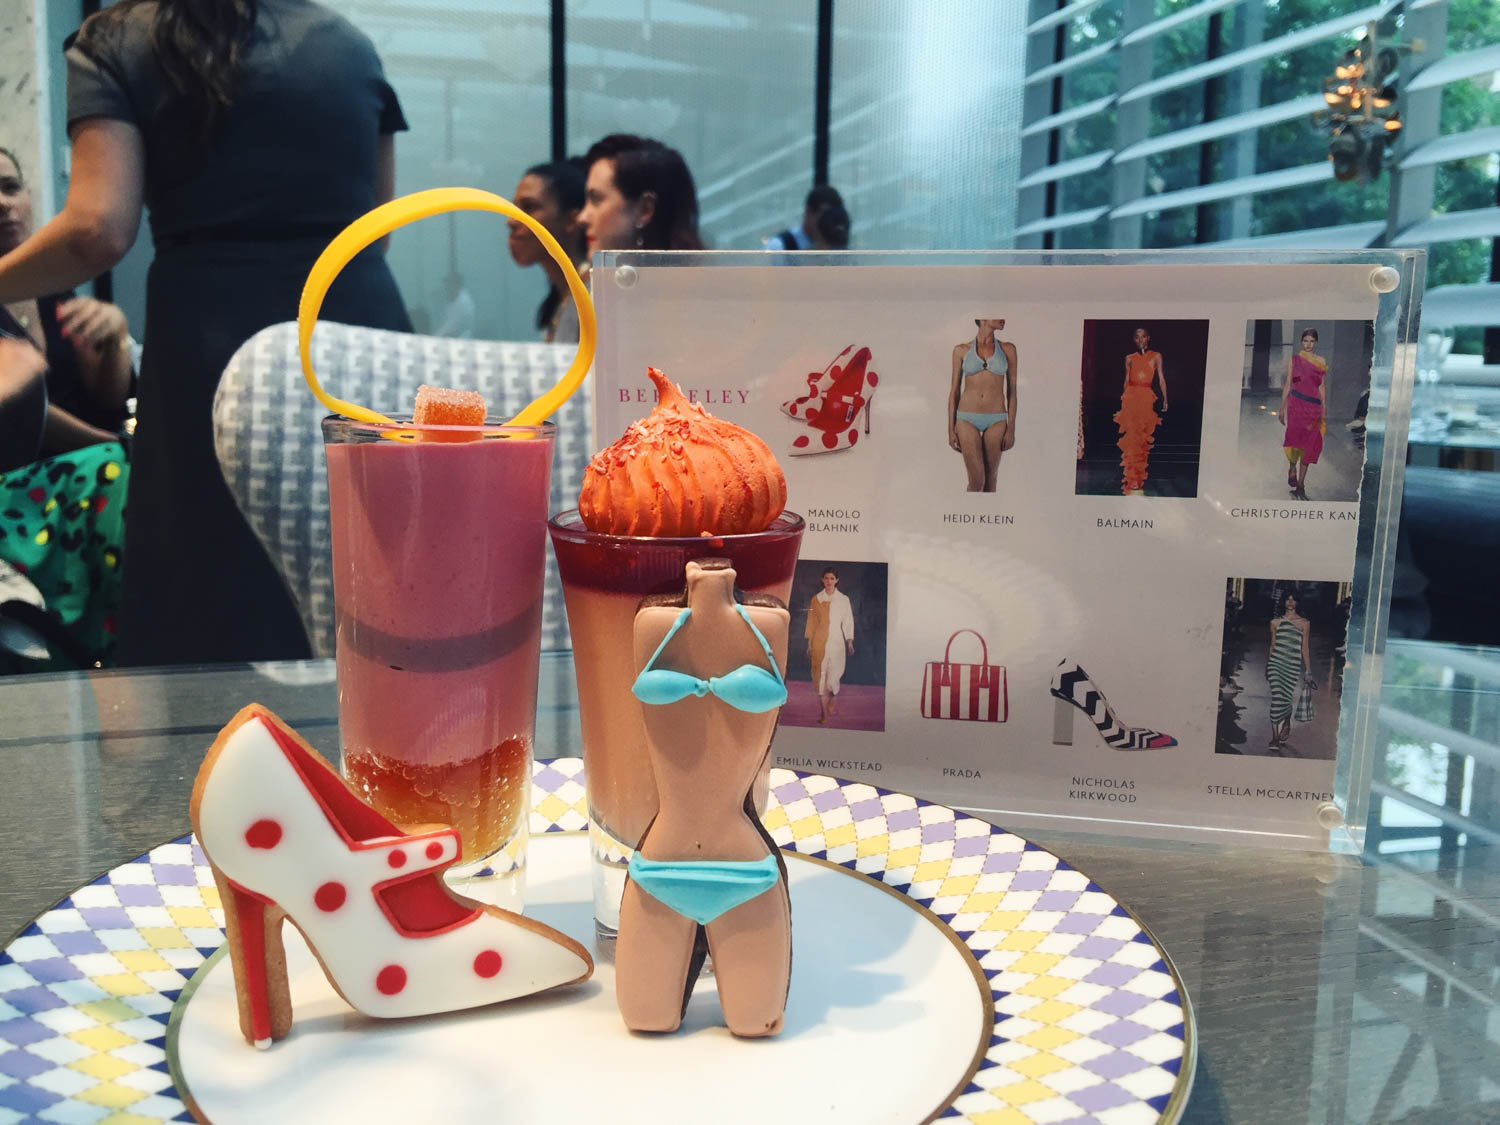 Best afternoon teas – Pret-a-Portea at The Berkeley